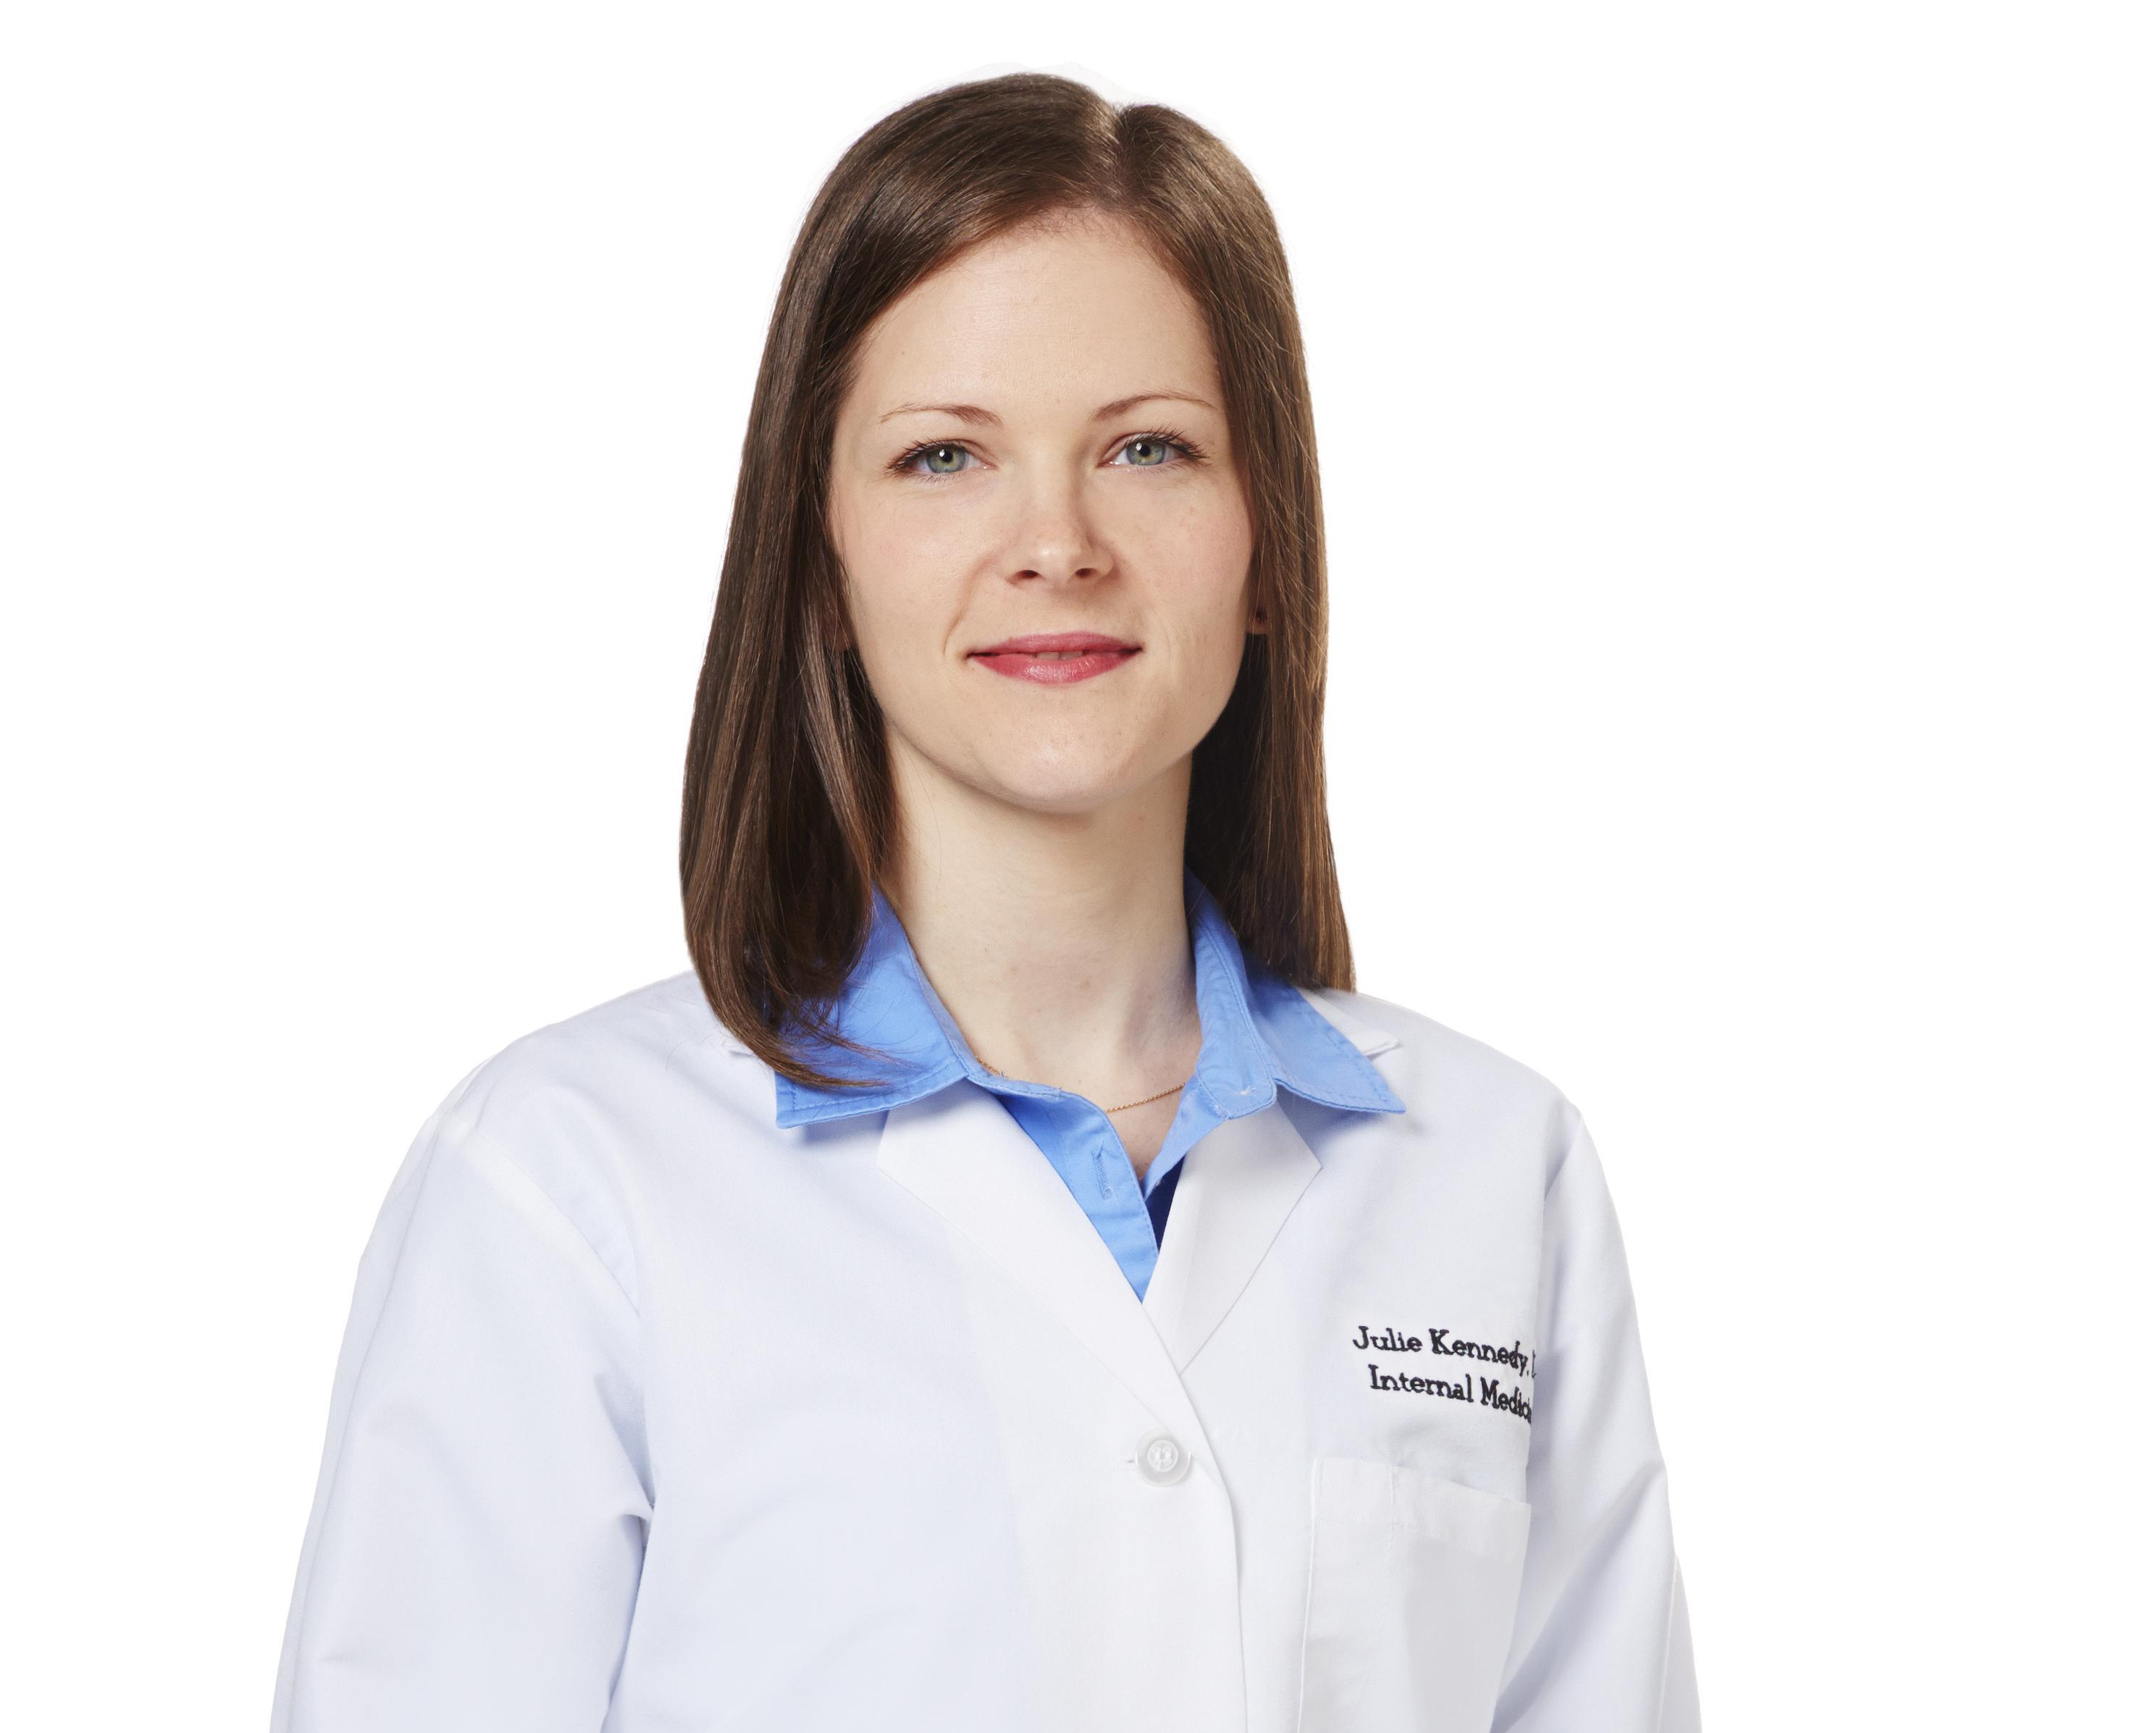 Julie Kennedy, MD